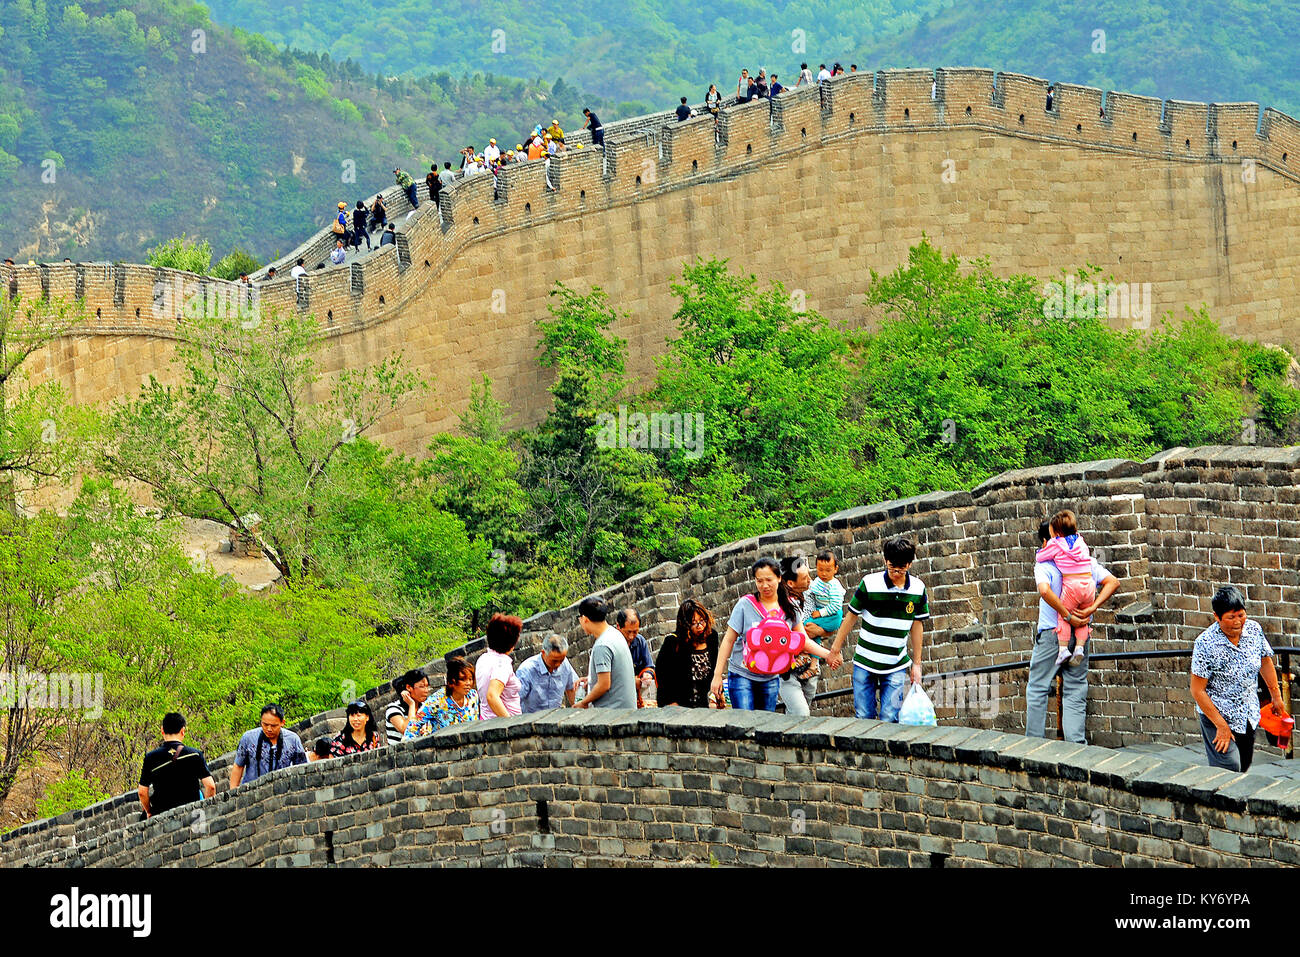 tourists on The great wall, Badaling, China - Stock Image